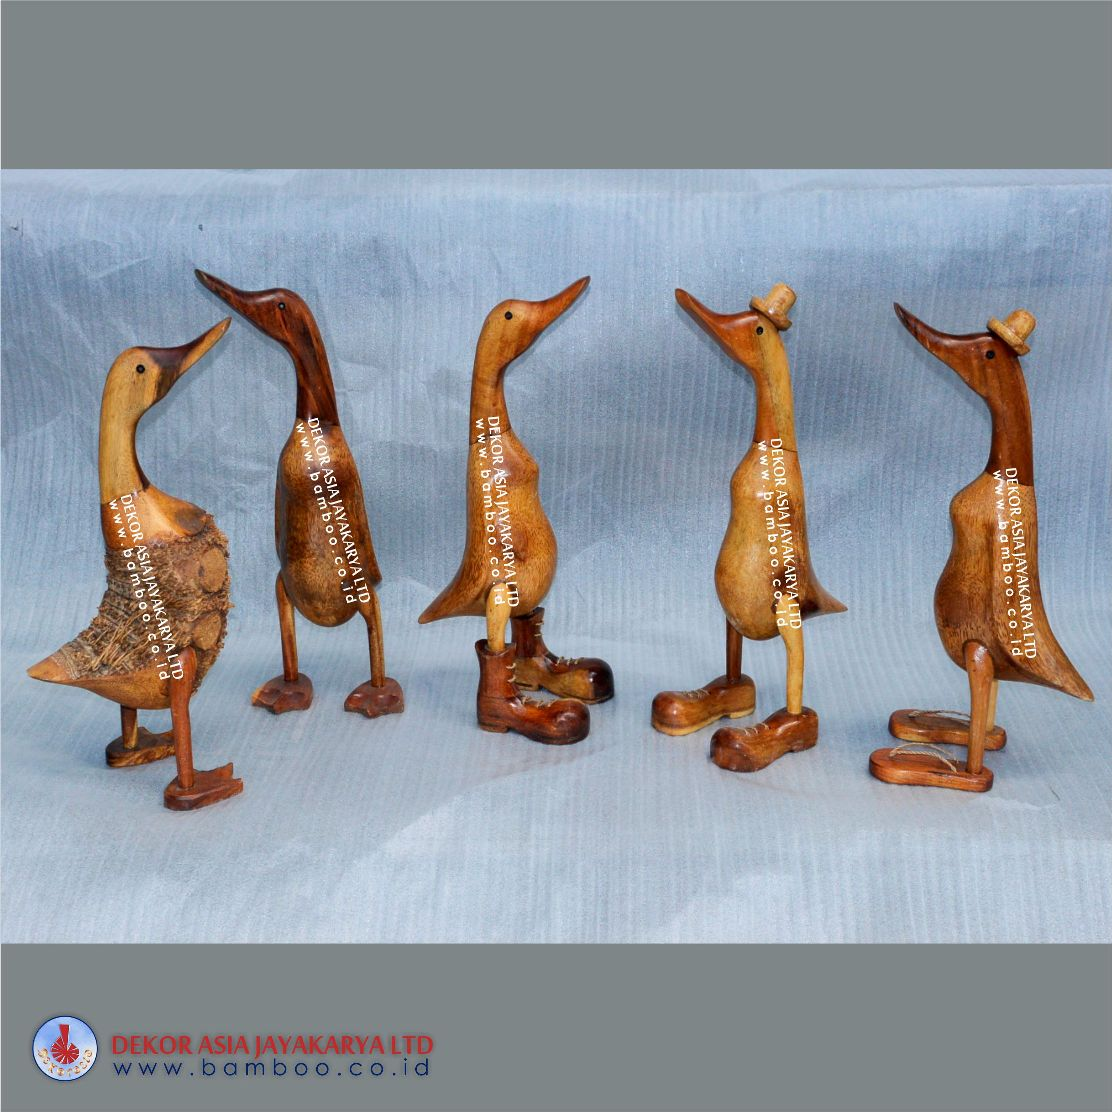 Bamboo Root Ducks - Bamboo Root Crafts - Bamboo Roots